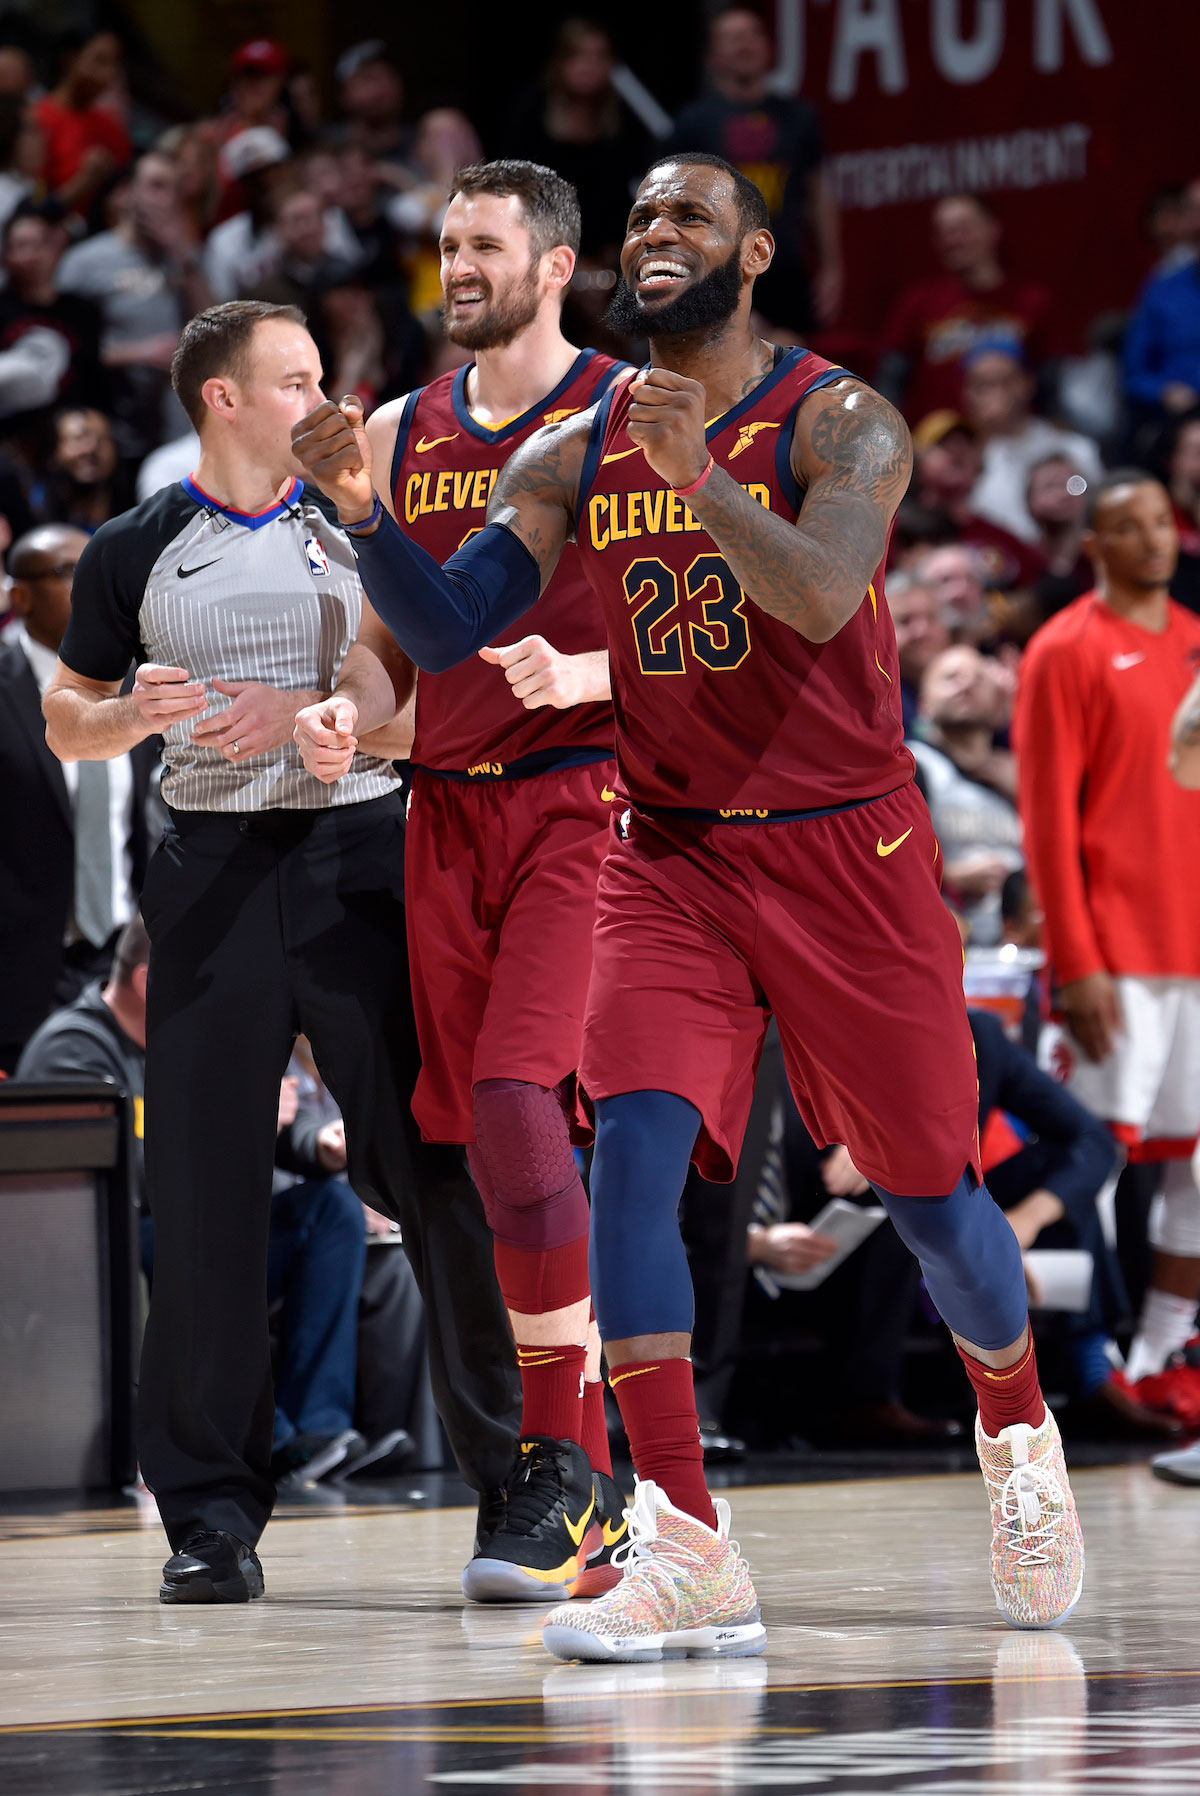 LeBron James #23 of the Cleveland Cavaliers reacts after a play against the Toronto Raptors on March 21, 2018 at Quicken Loans Arena in Cleveland, Ohio